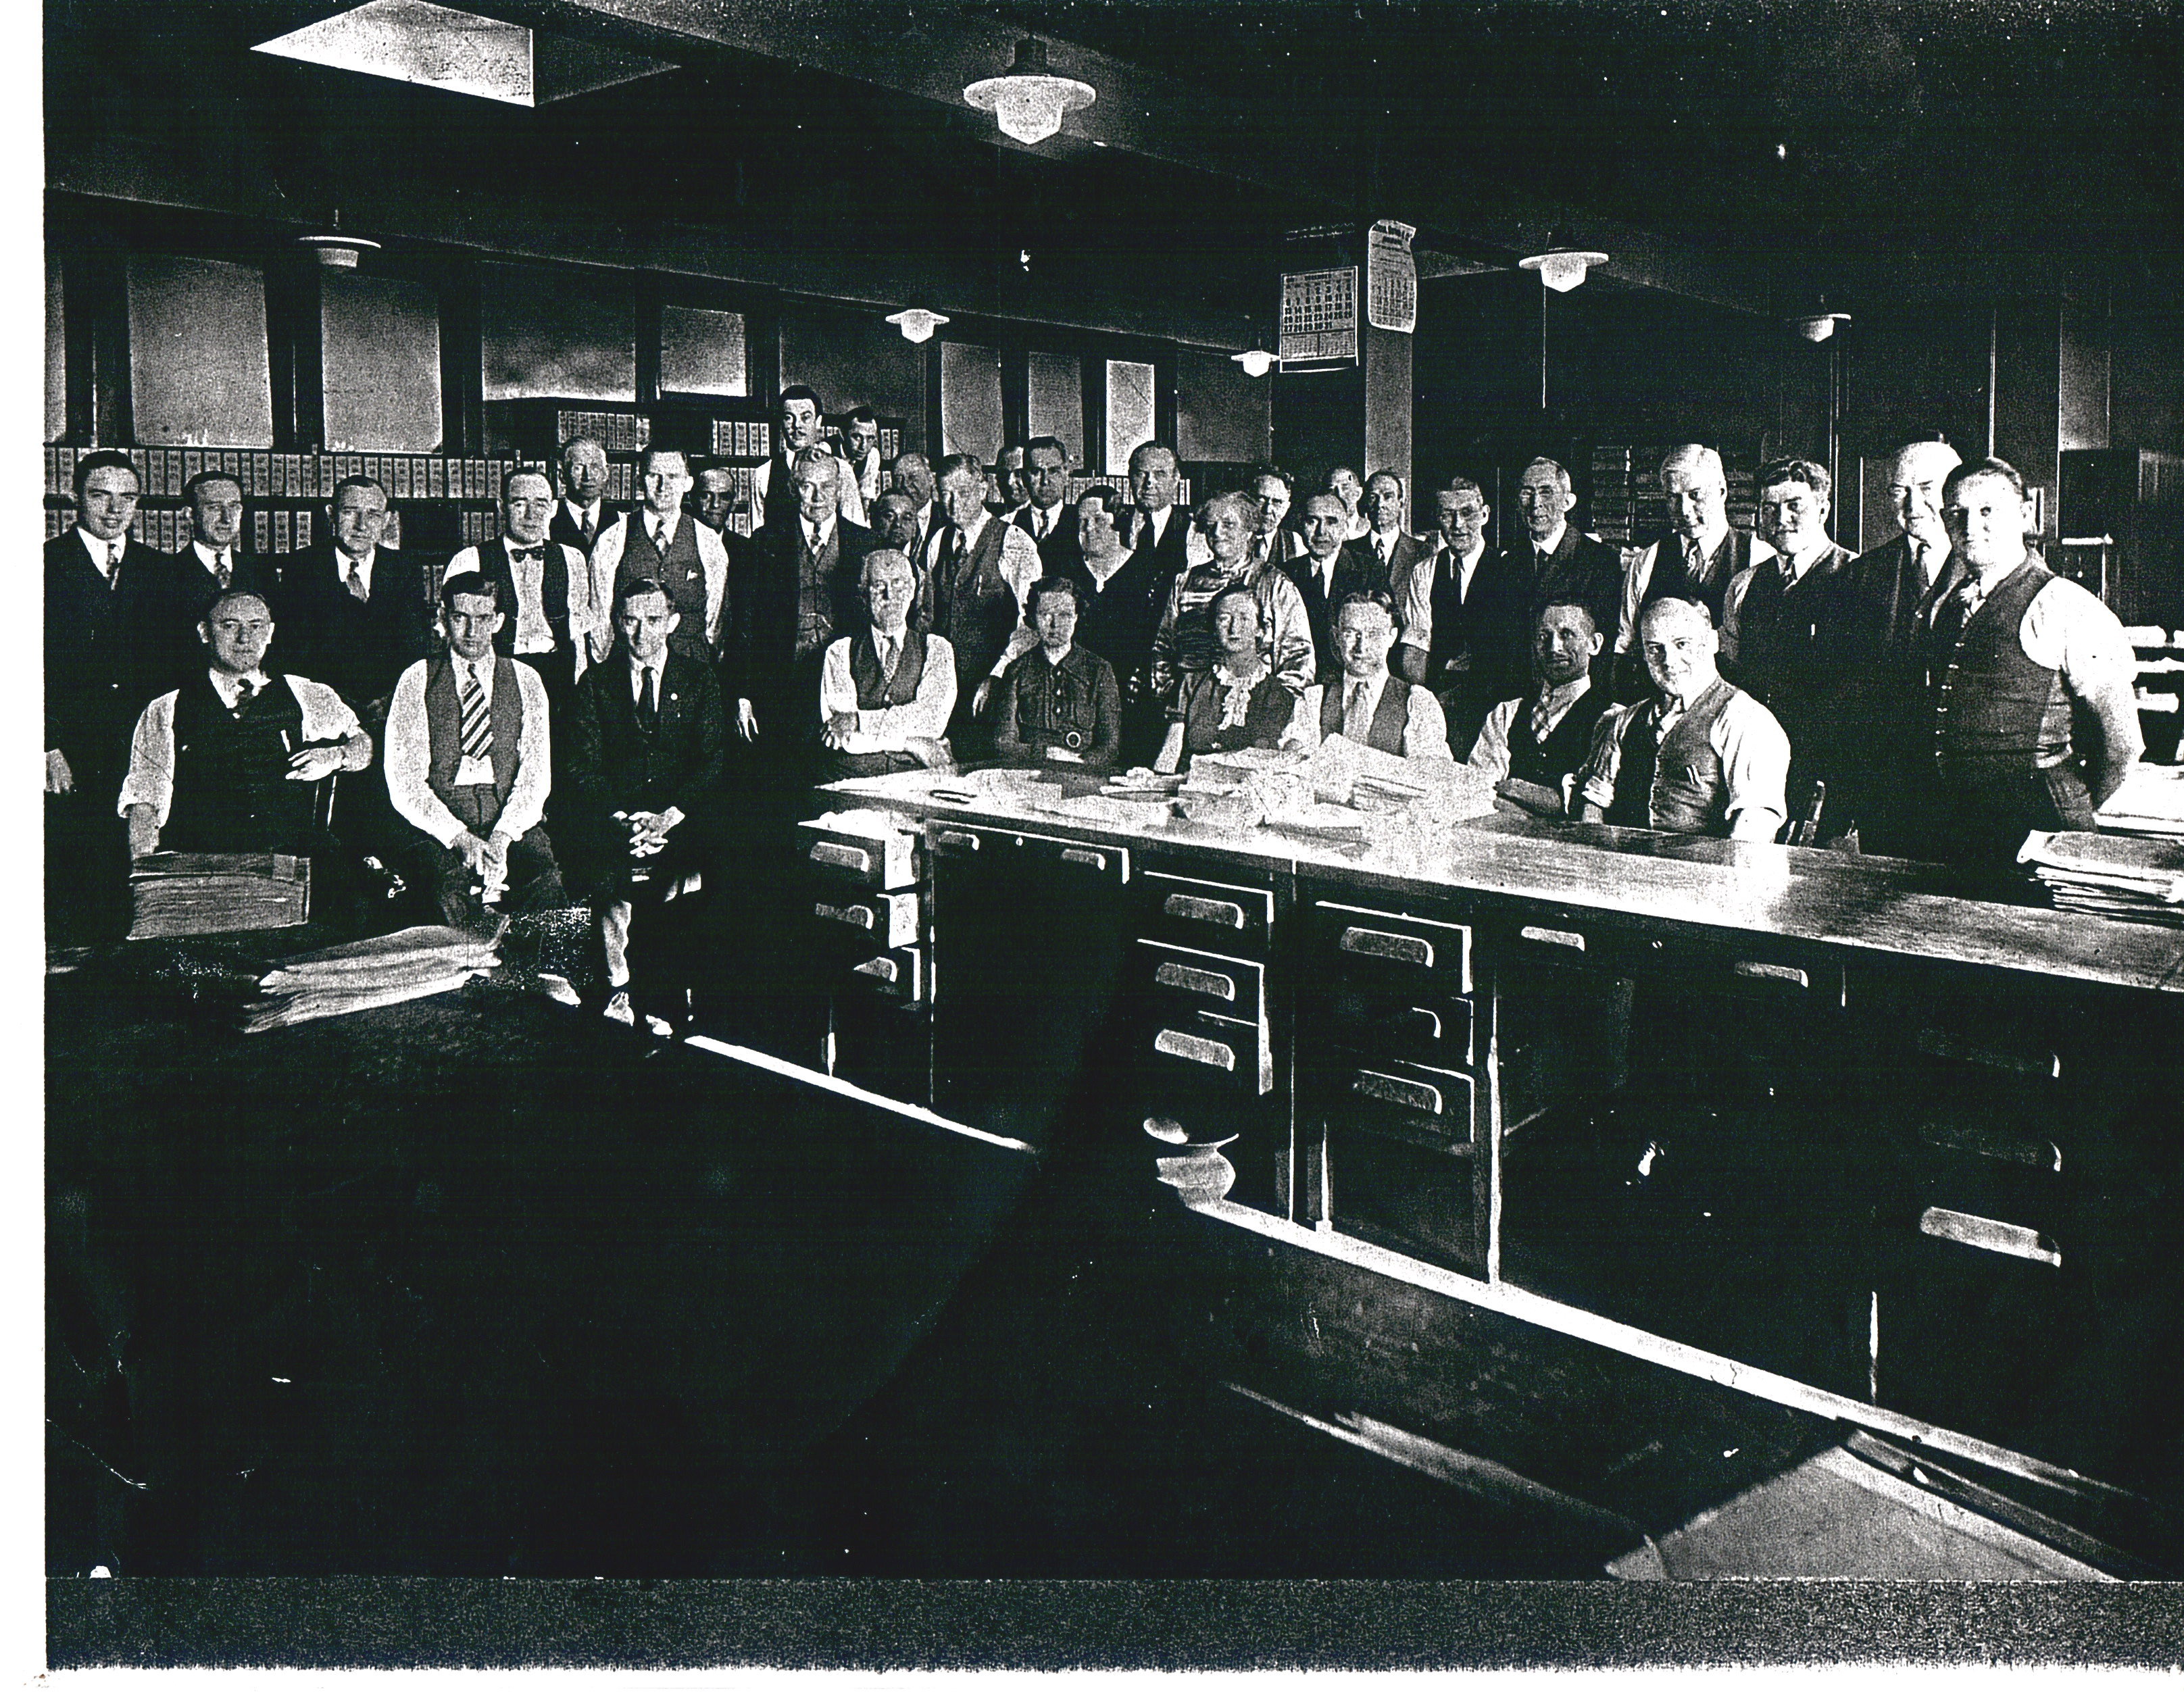 Ed (~35-40 years) with coworkers at the CNJ Railroad Headquarters in Elizabeth